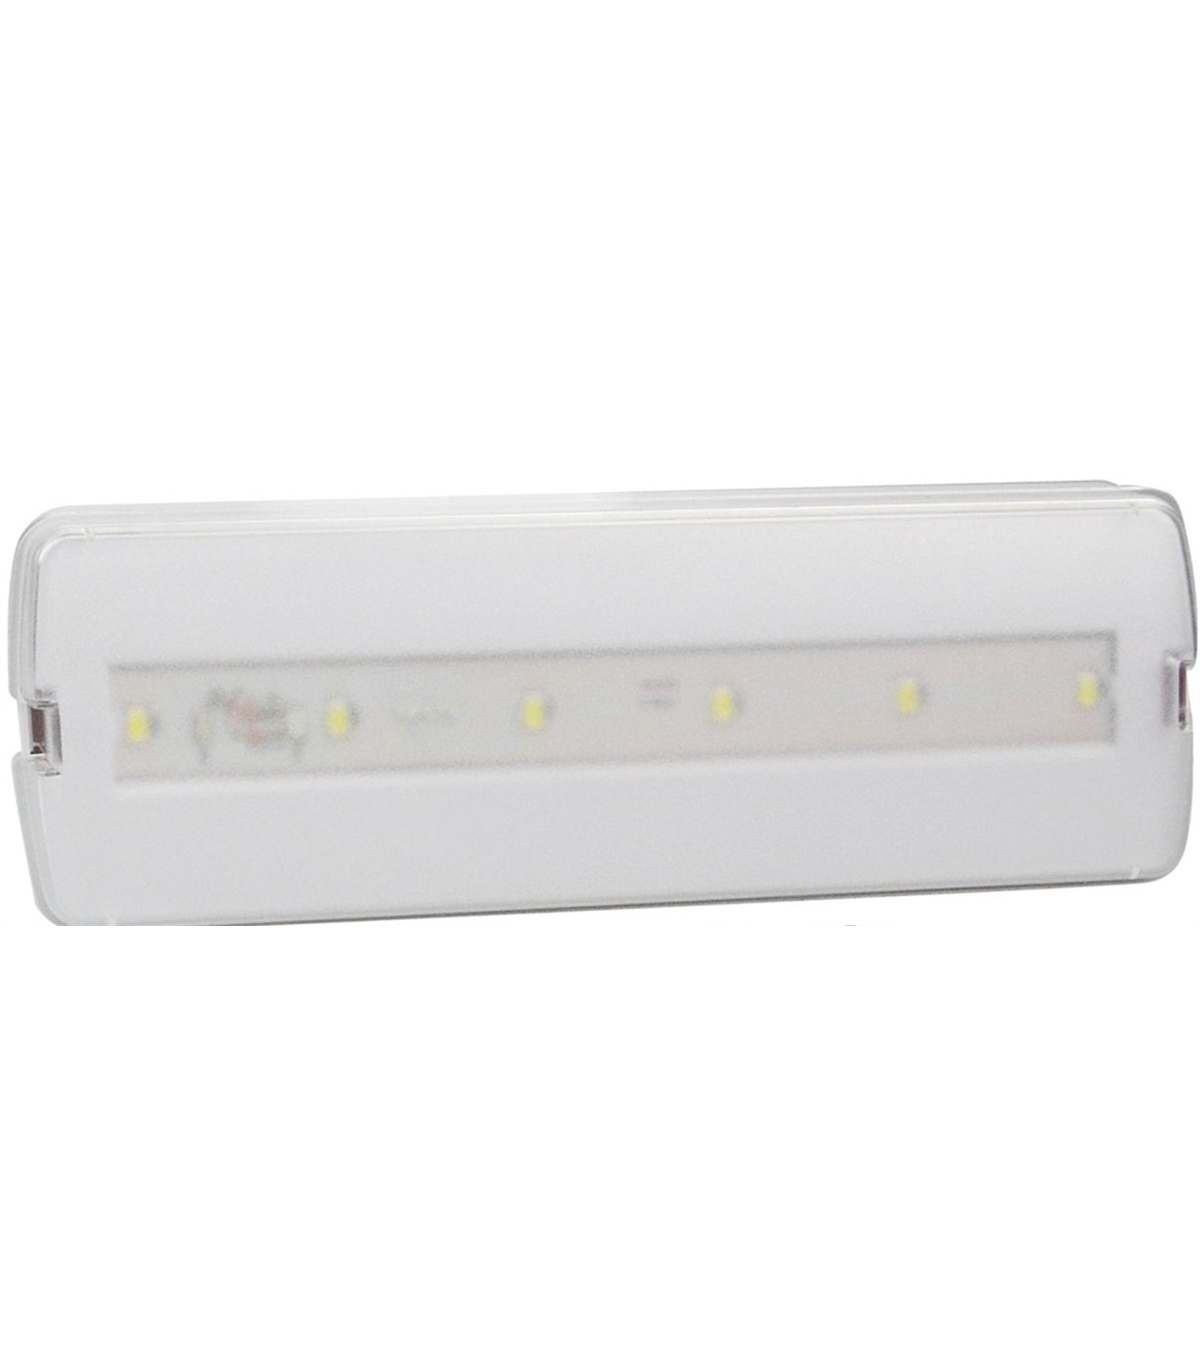 Emergencia Led Llemergencia300 6 Luz De Emergência Led Aplique 3w